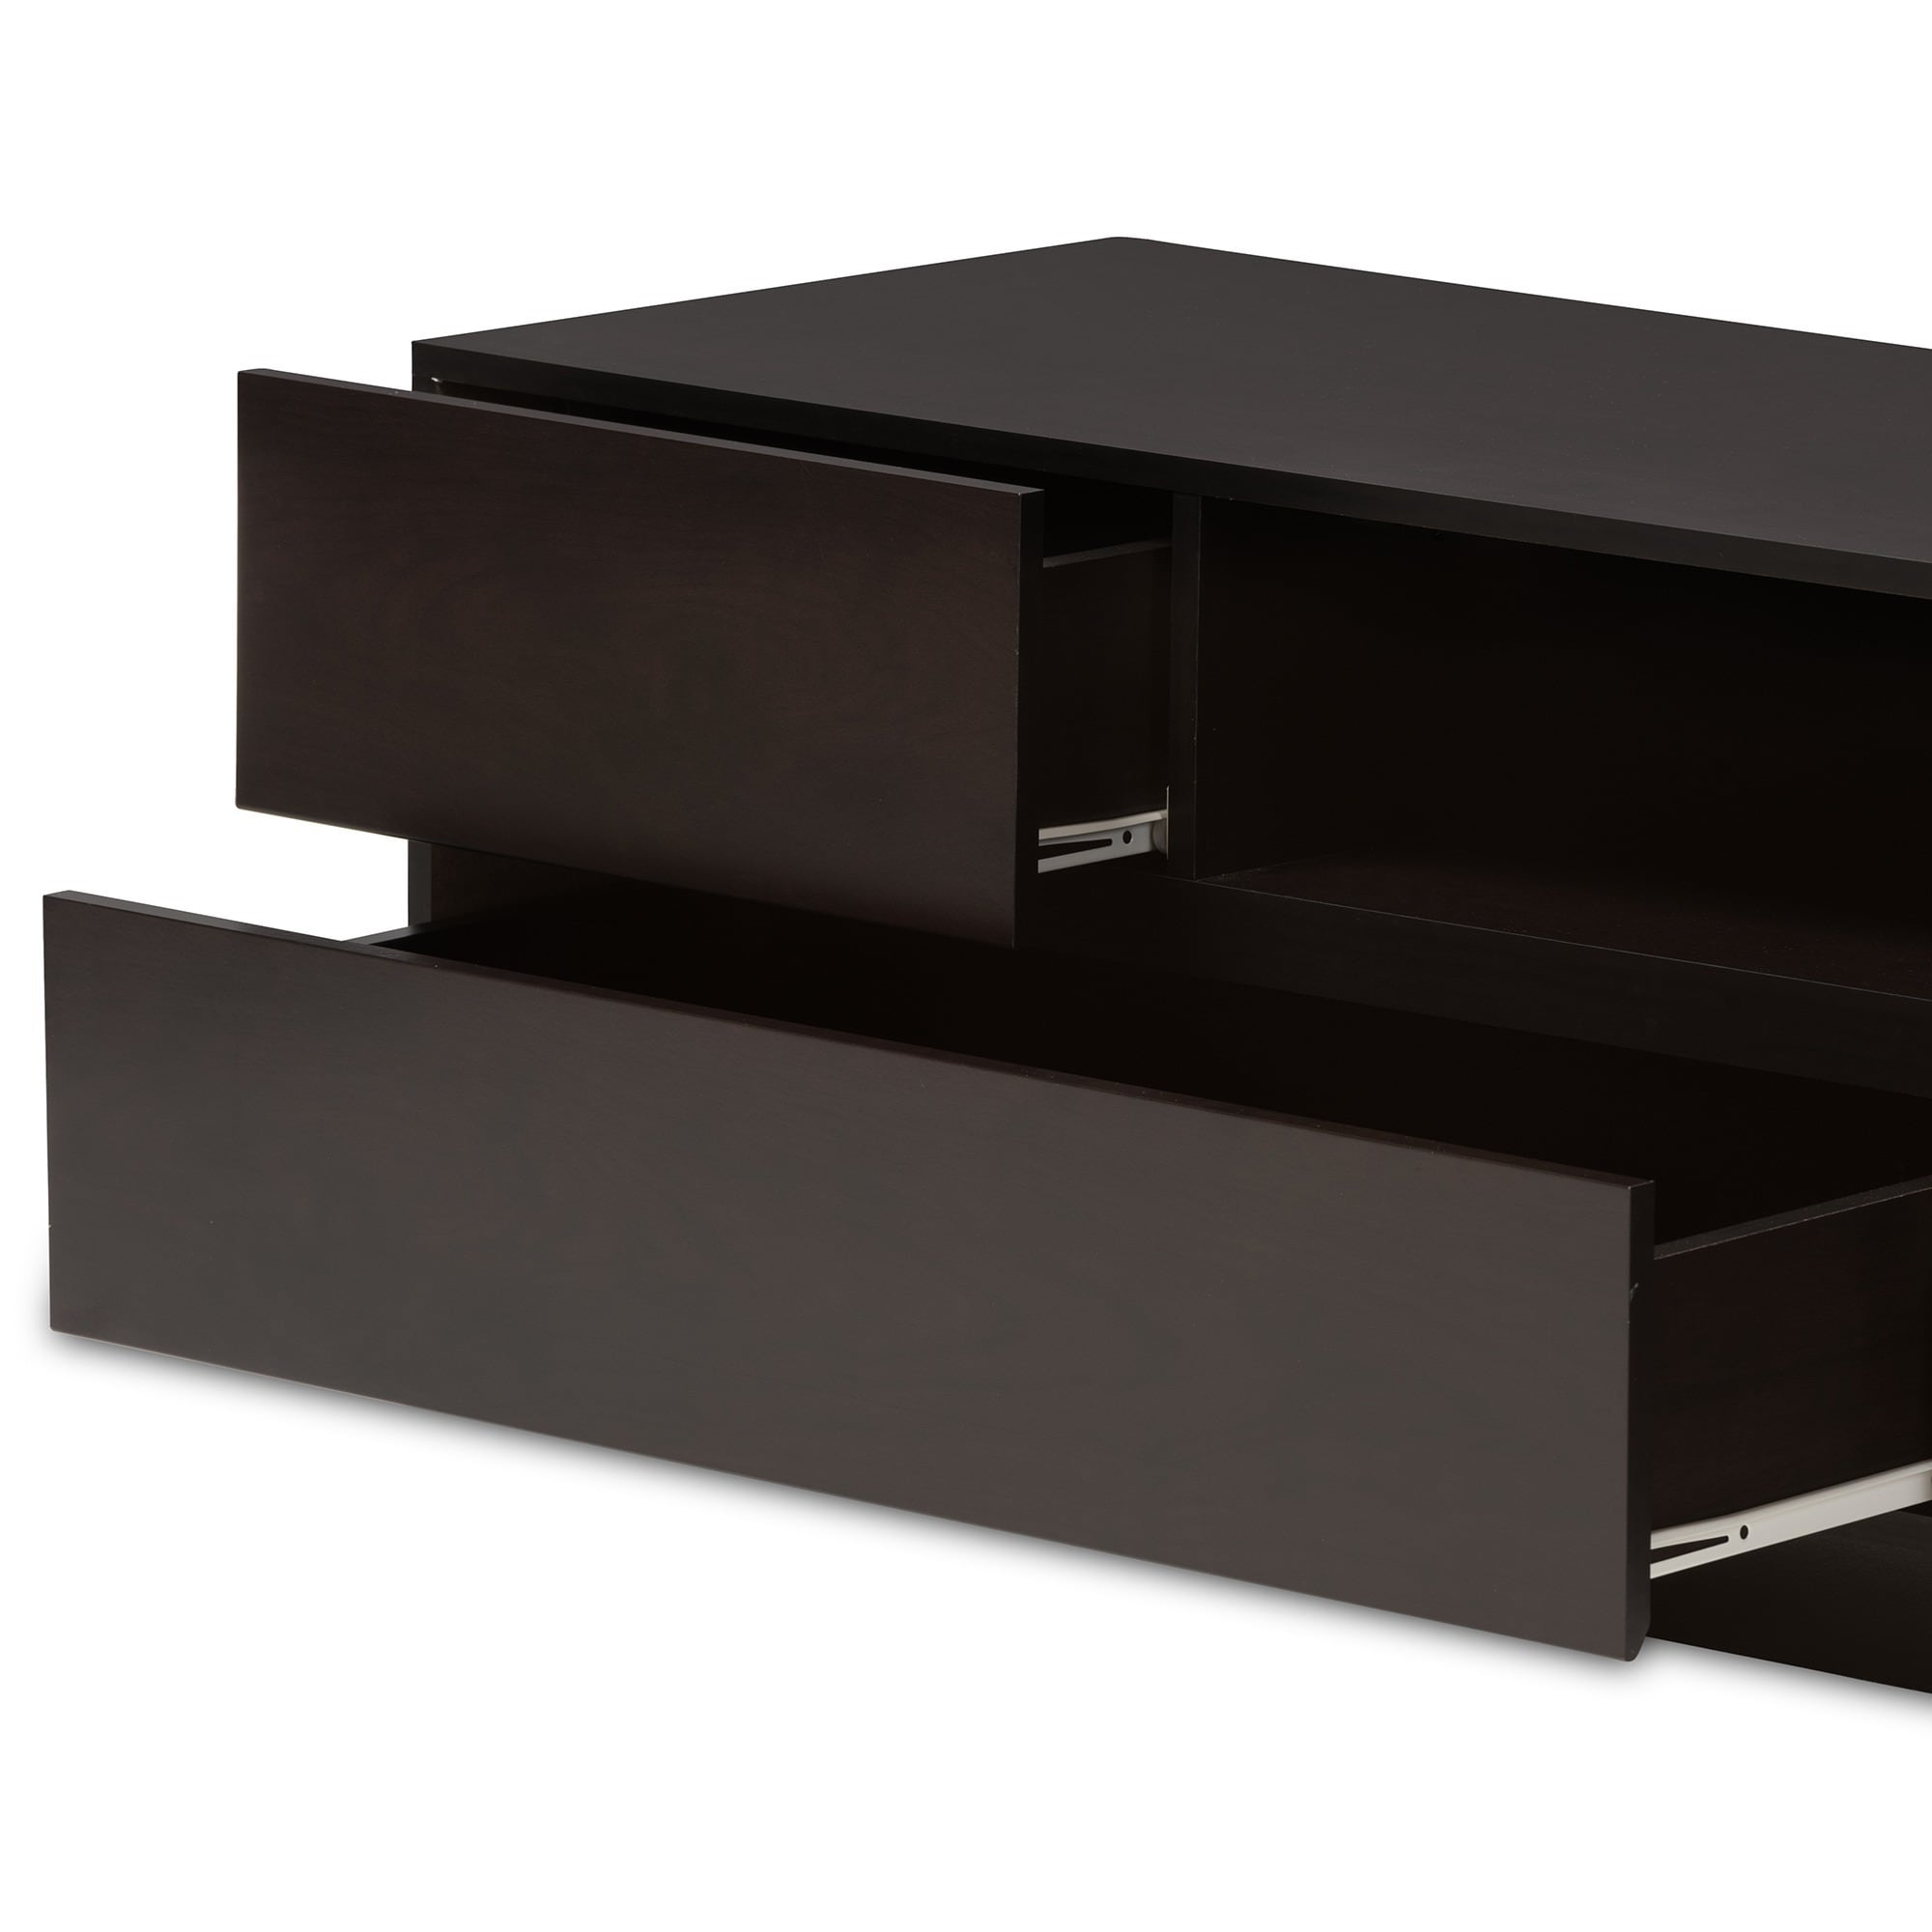 Lovato Dark Brown Tv Cabinet Free Shipping Today 6975541